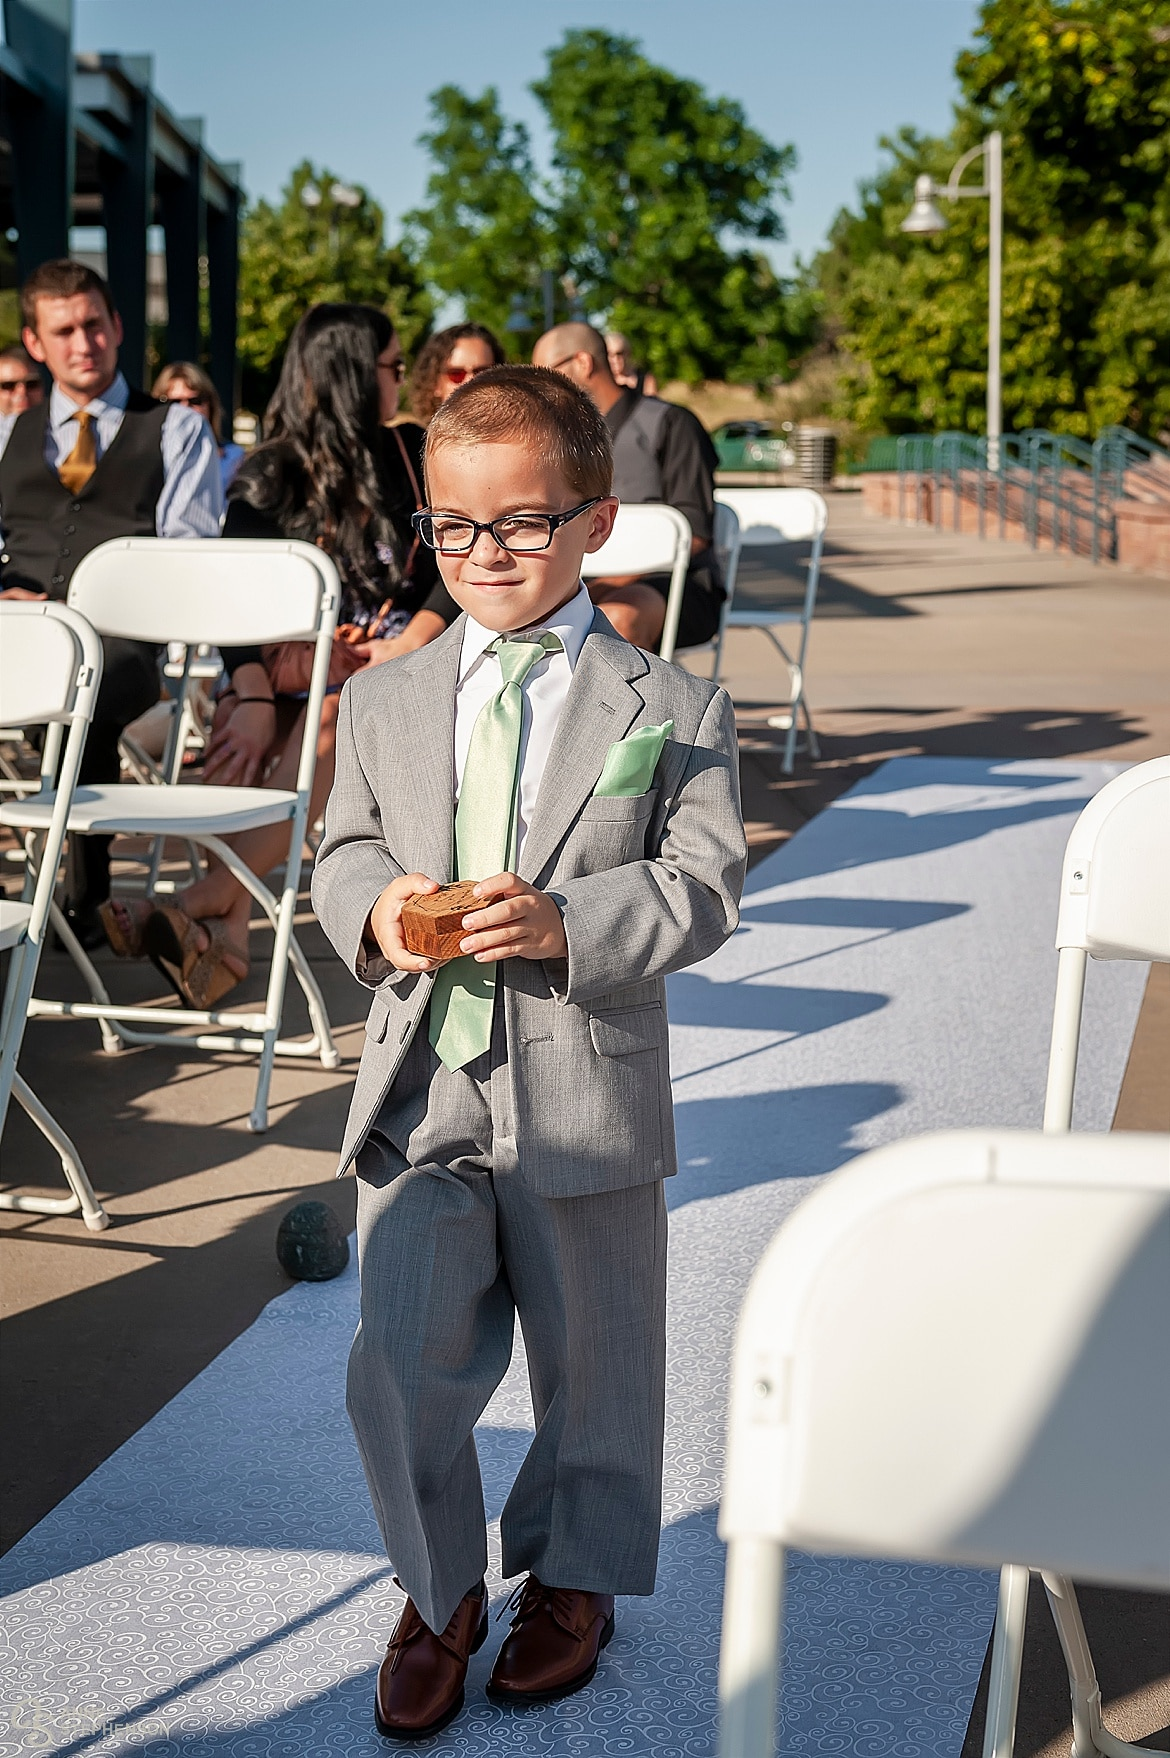 The ring bearer proceeds down the aisle.